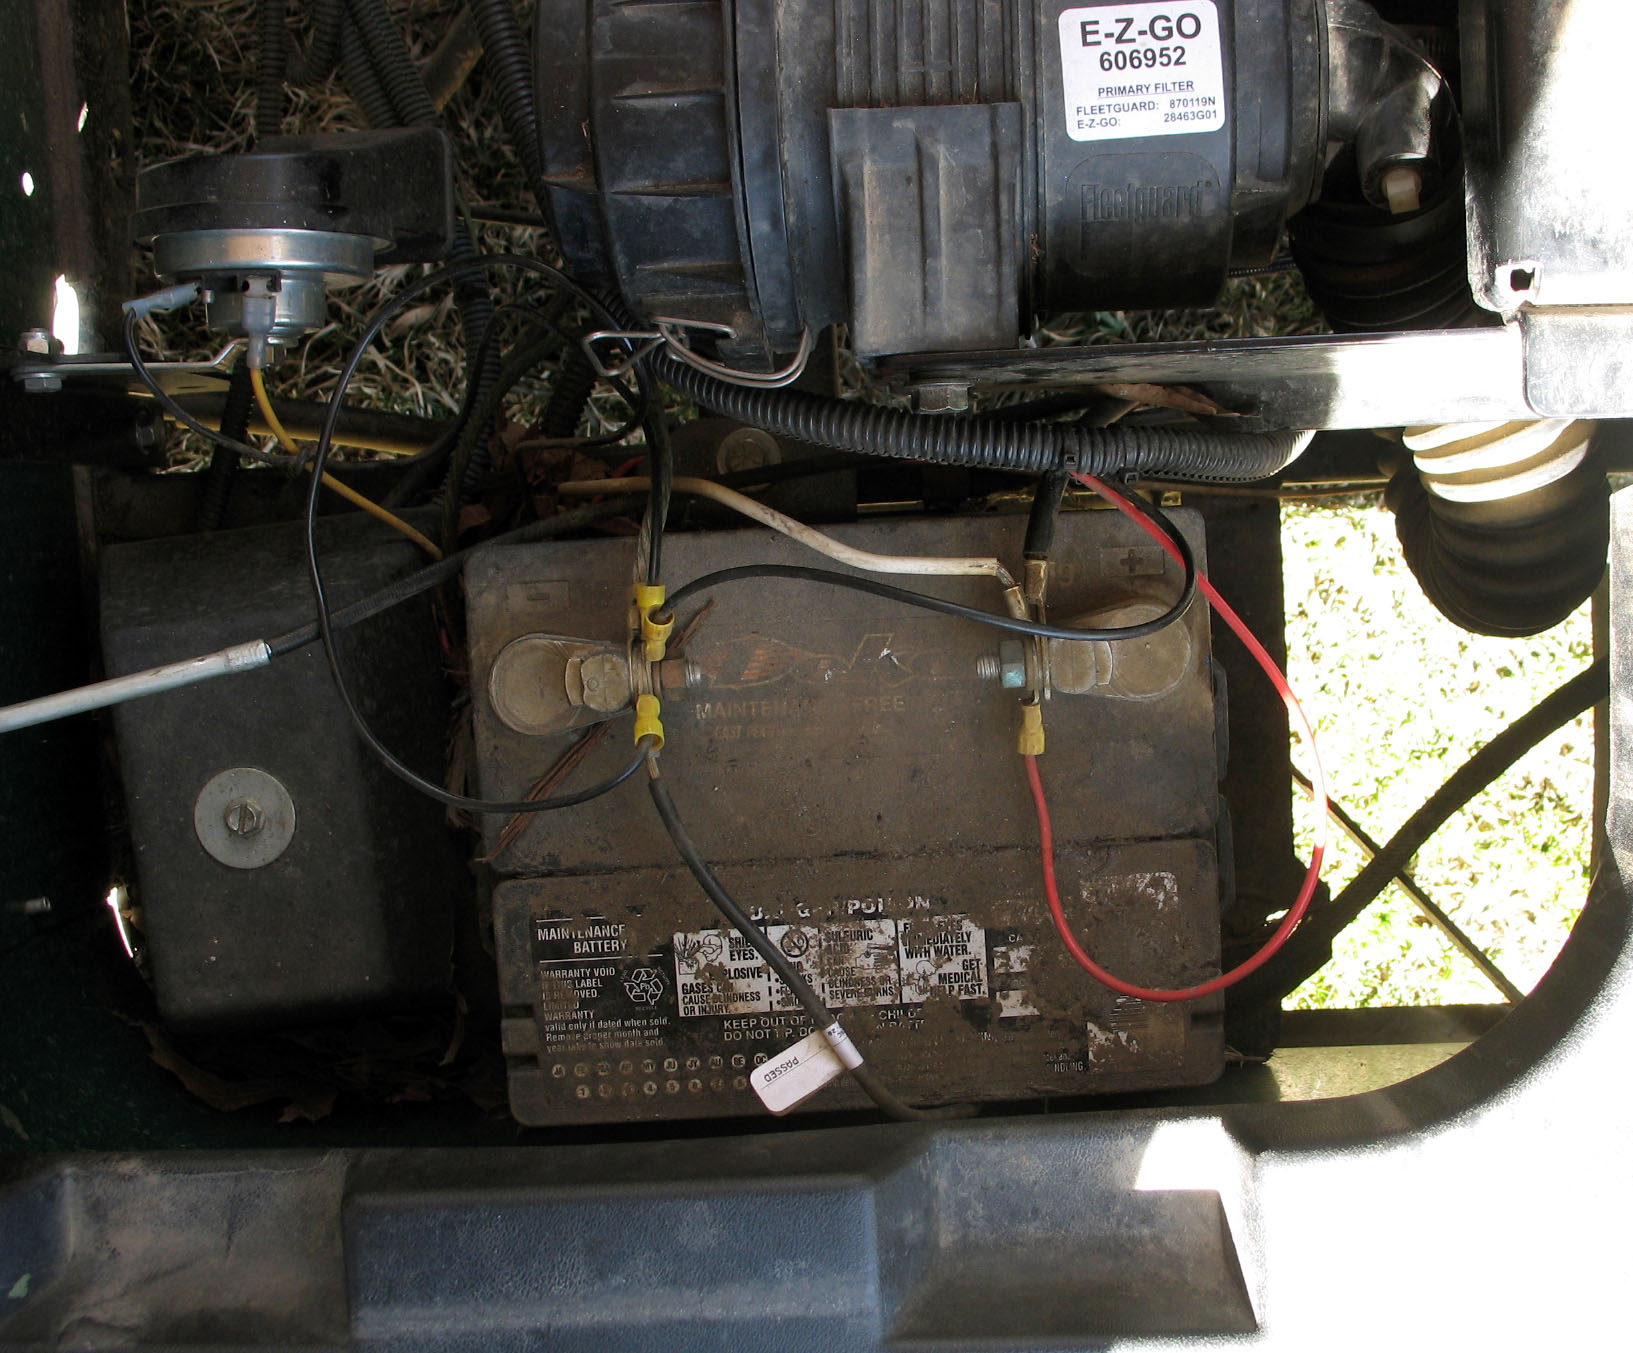 2001 ez go txt wiring diagram 1997 ford expedition stereo put spring in your gas golf cart talkgolfcarcatalog com blog c